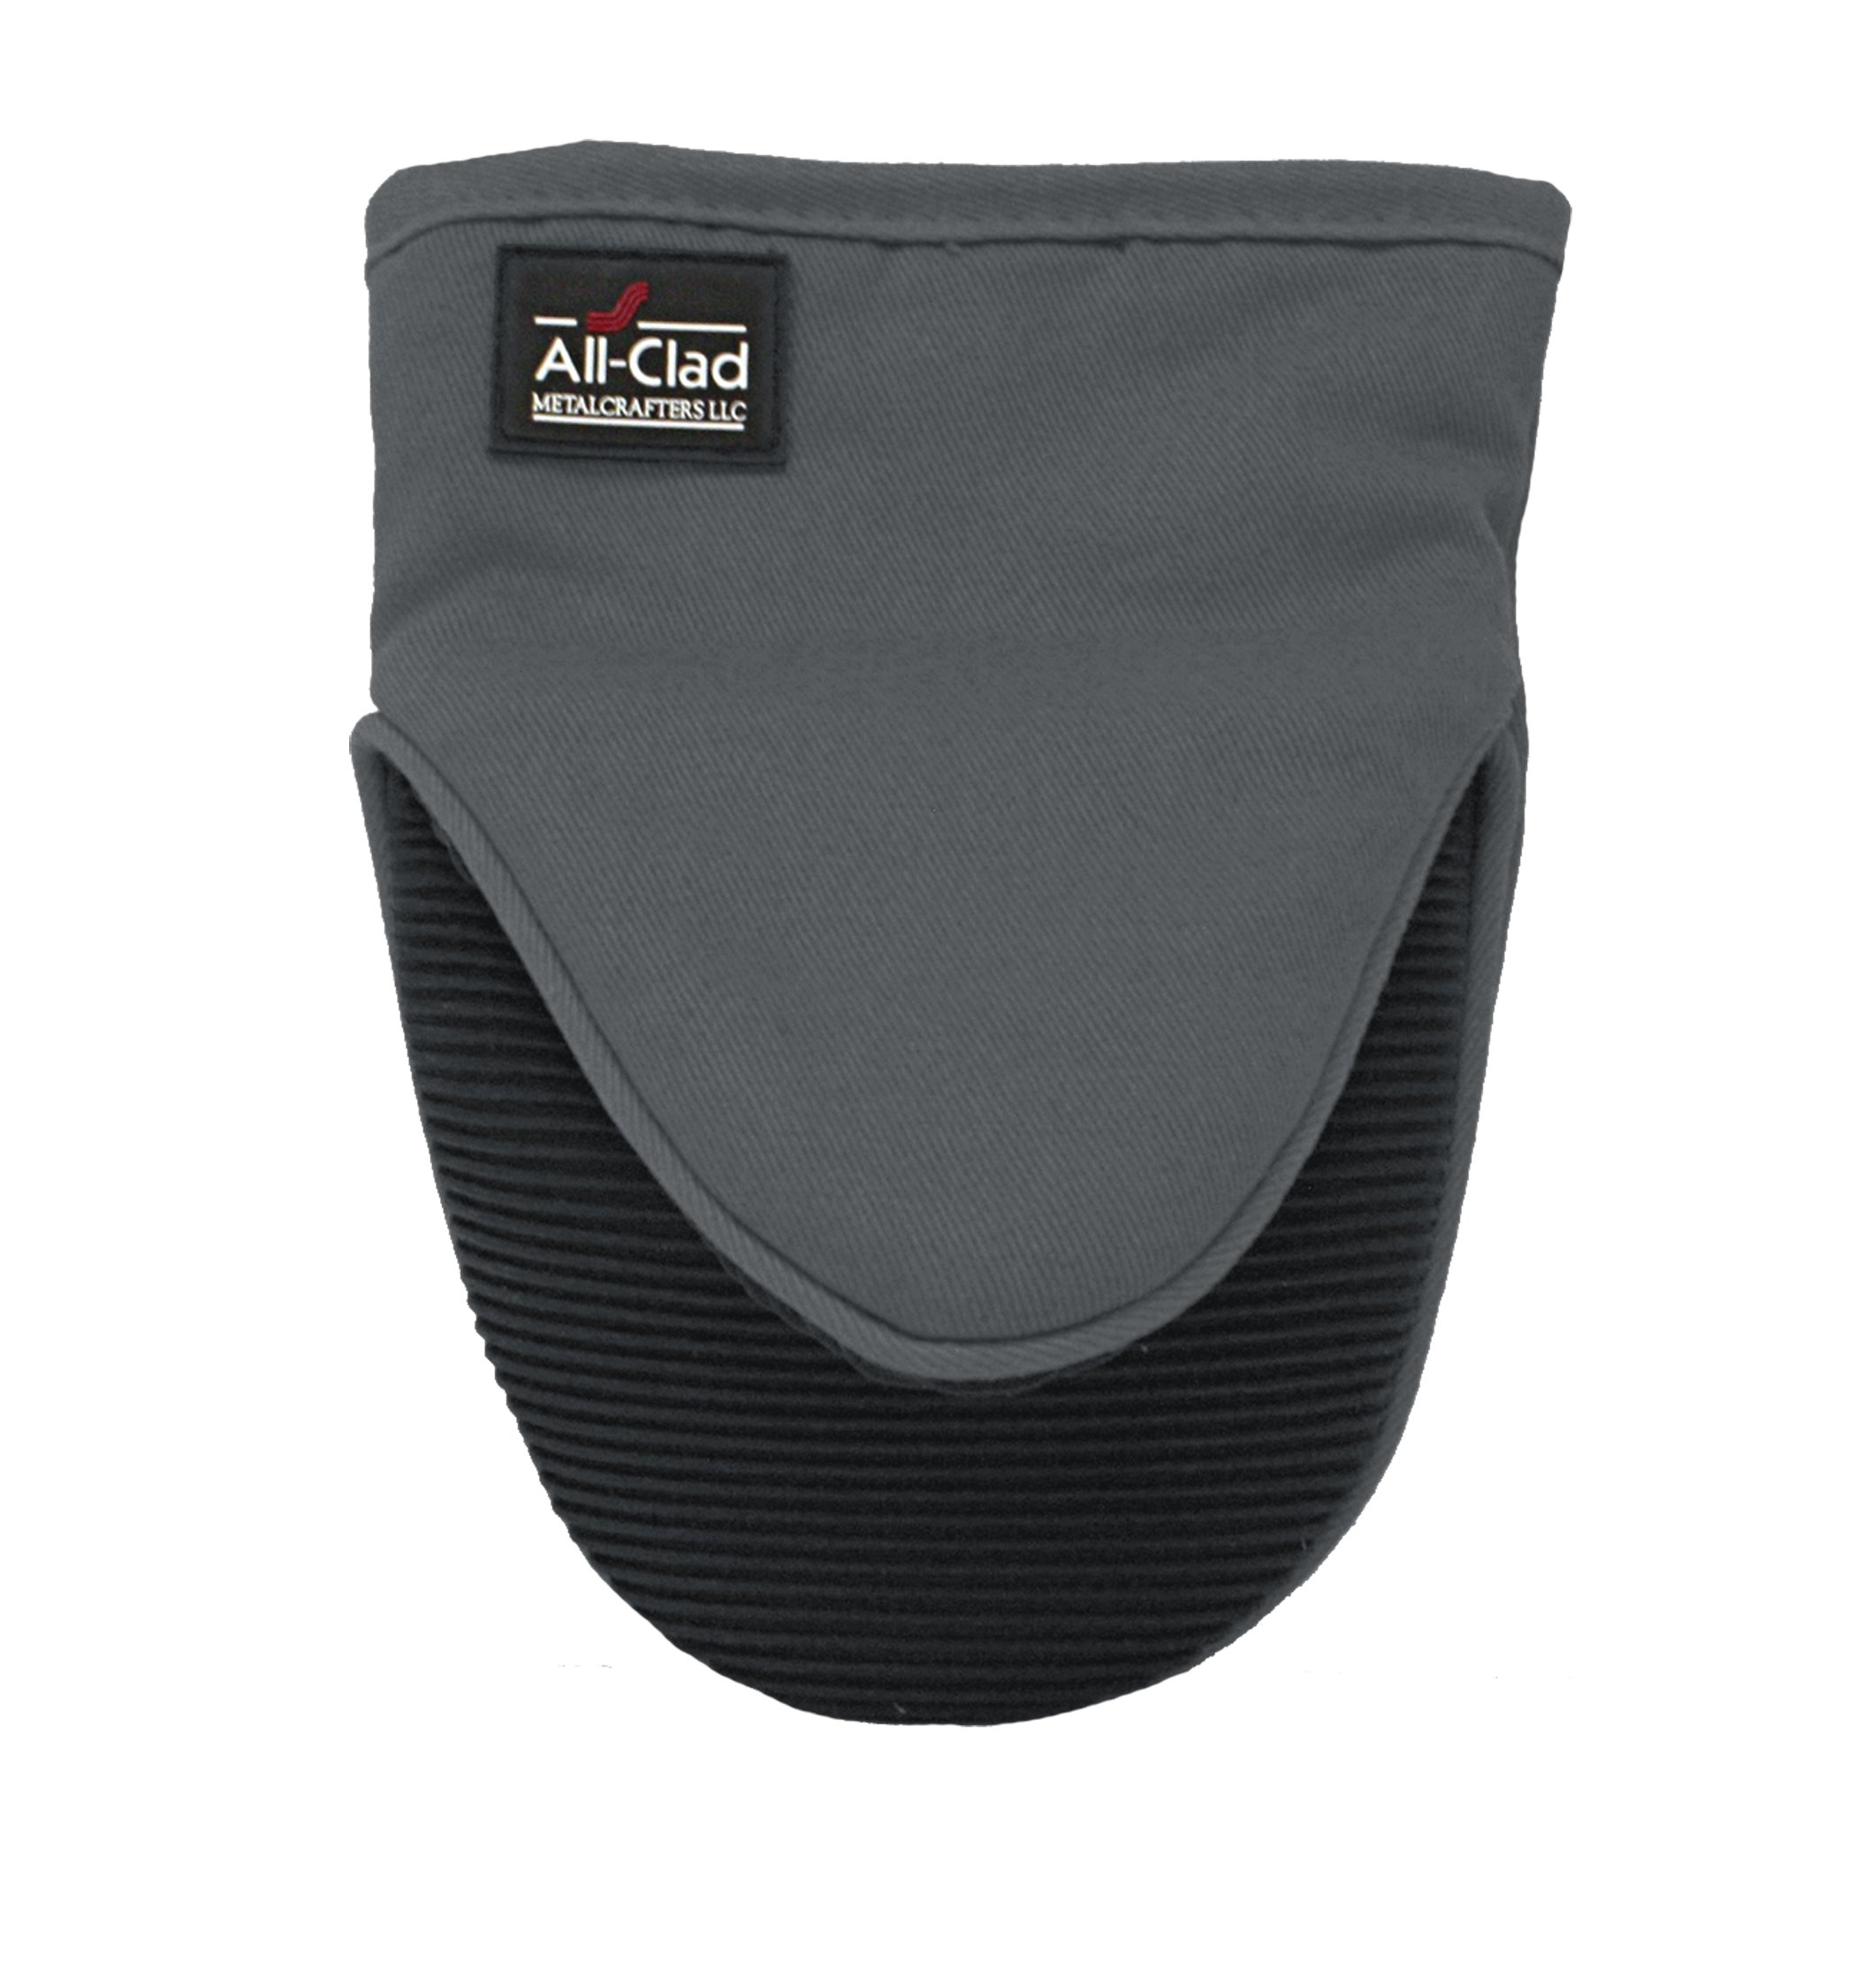 All-Clad Textiles Professional 600-Degree Cotton Twill Silicone Grabber Oven Mitt with No-Slip Grip, Pewter by All Clad Textiles